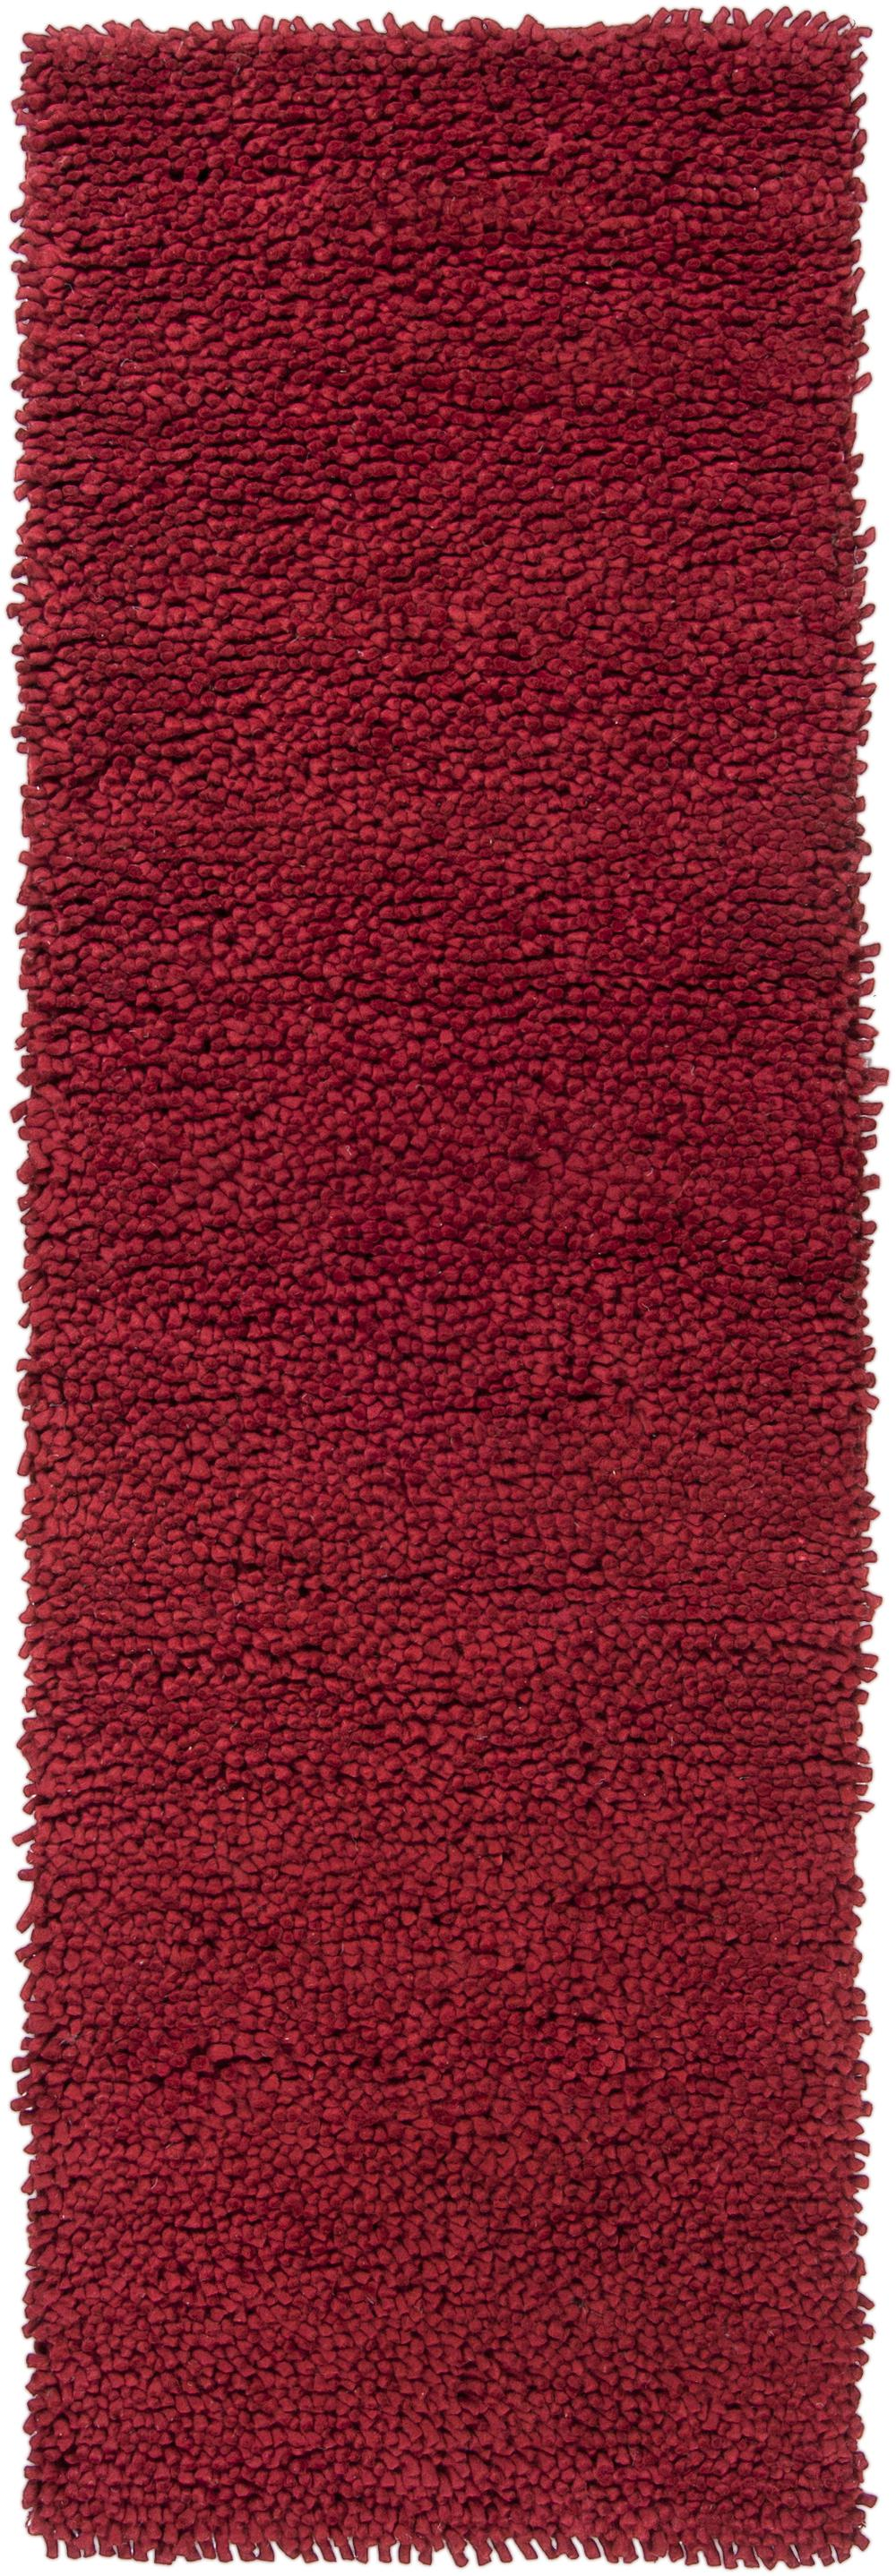 Surya Aros Aros1 Red Area Rug Free Shipping